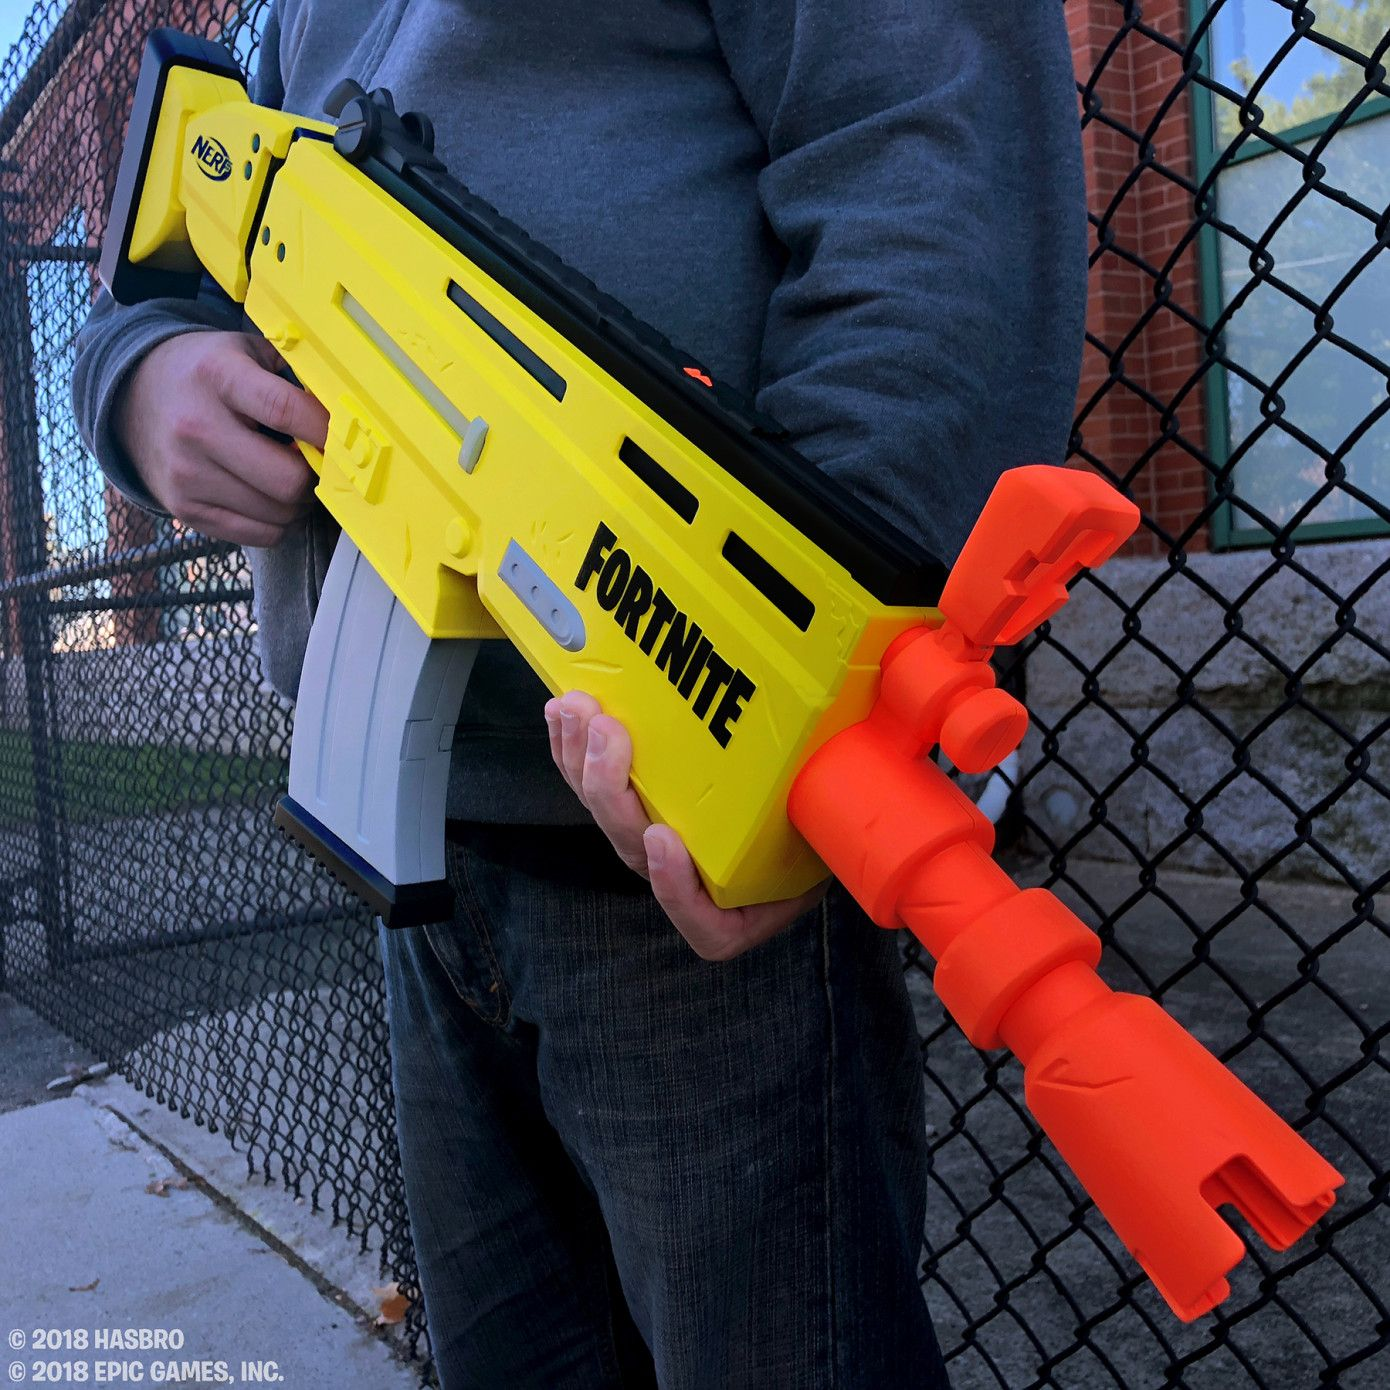 c317e98972 This is the Fortnite Nerf gun - Brought to you by Smart-e